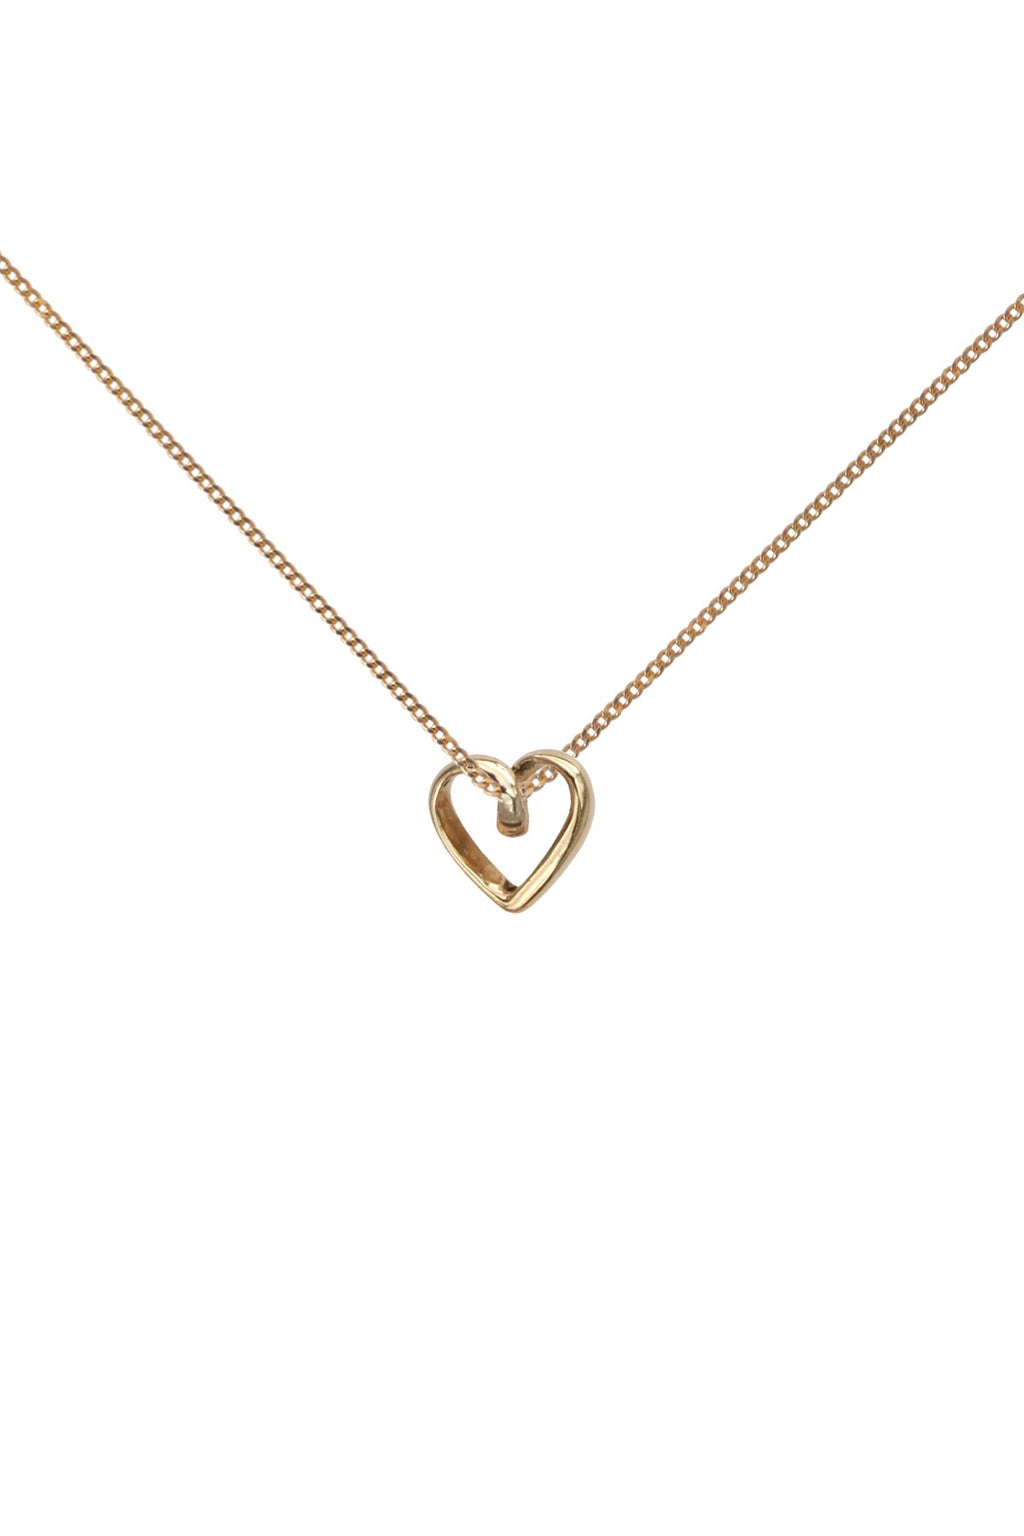 Gold Heart Pendant + Chain